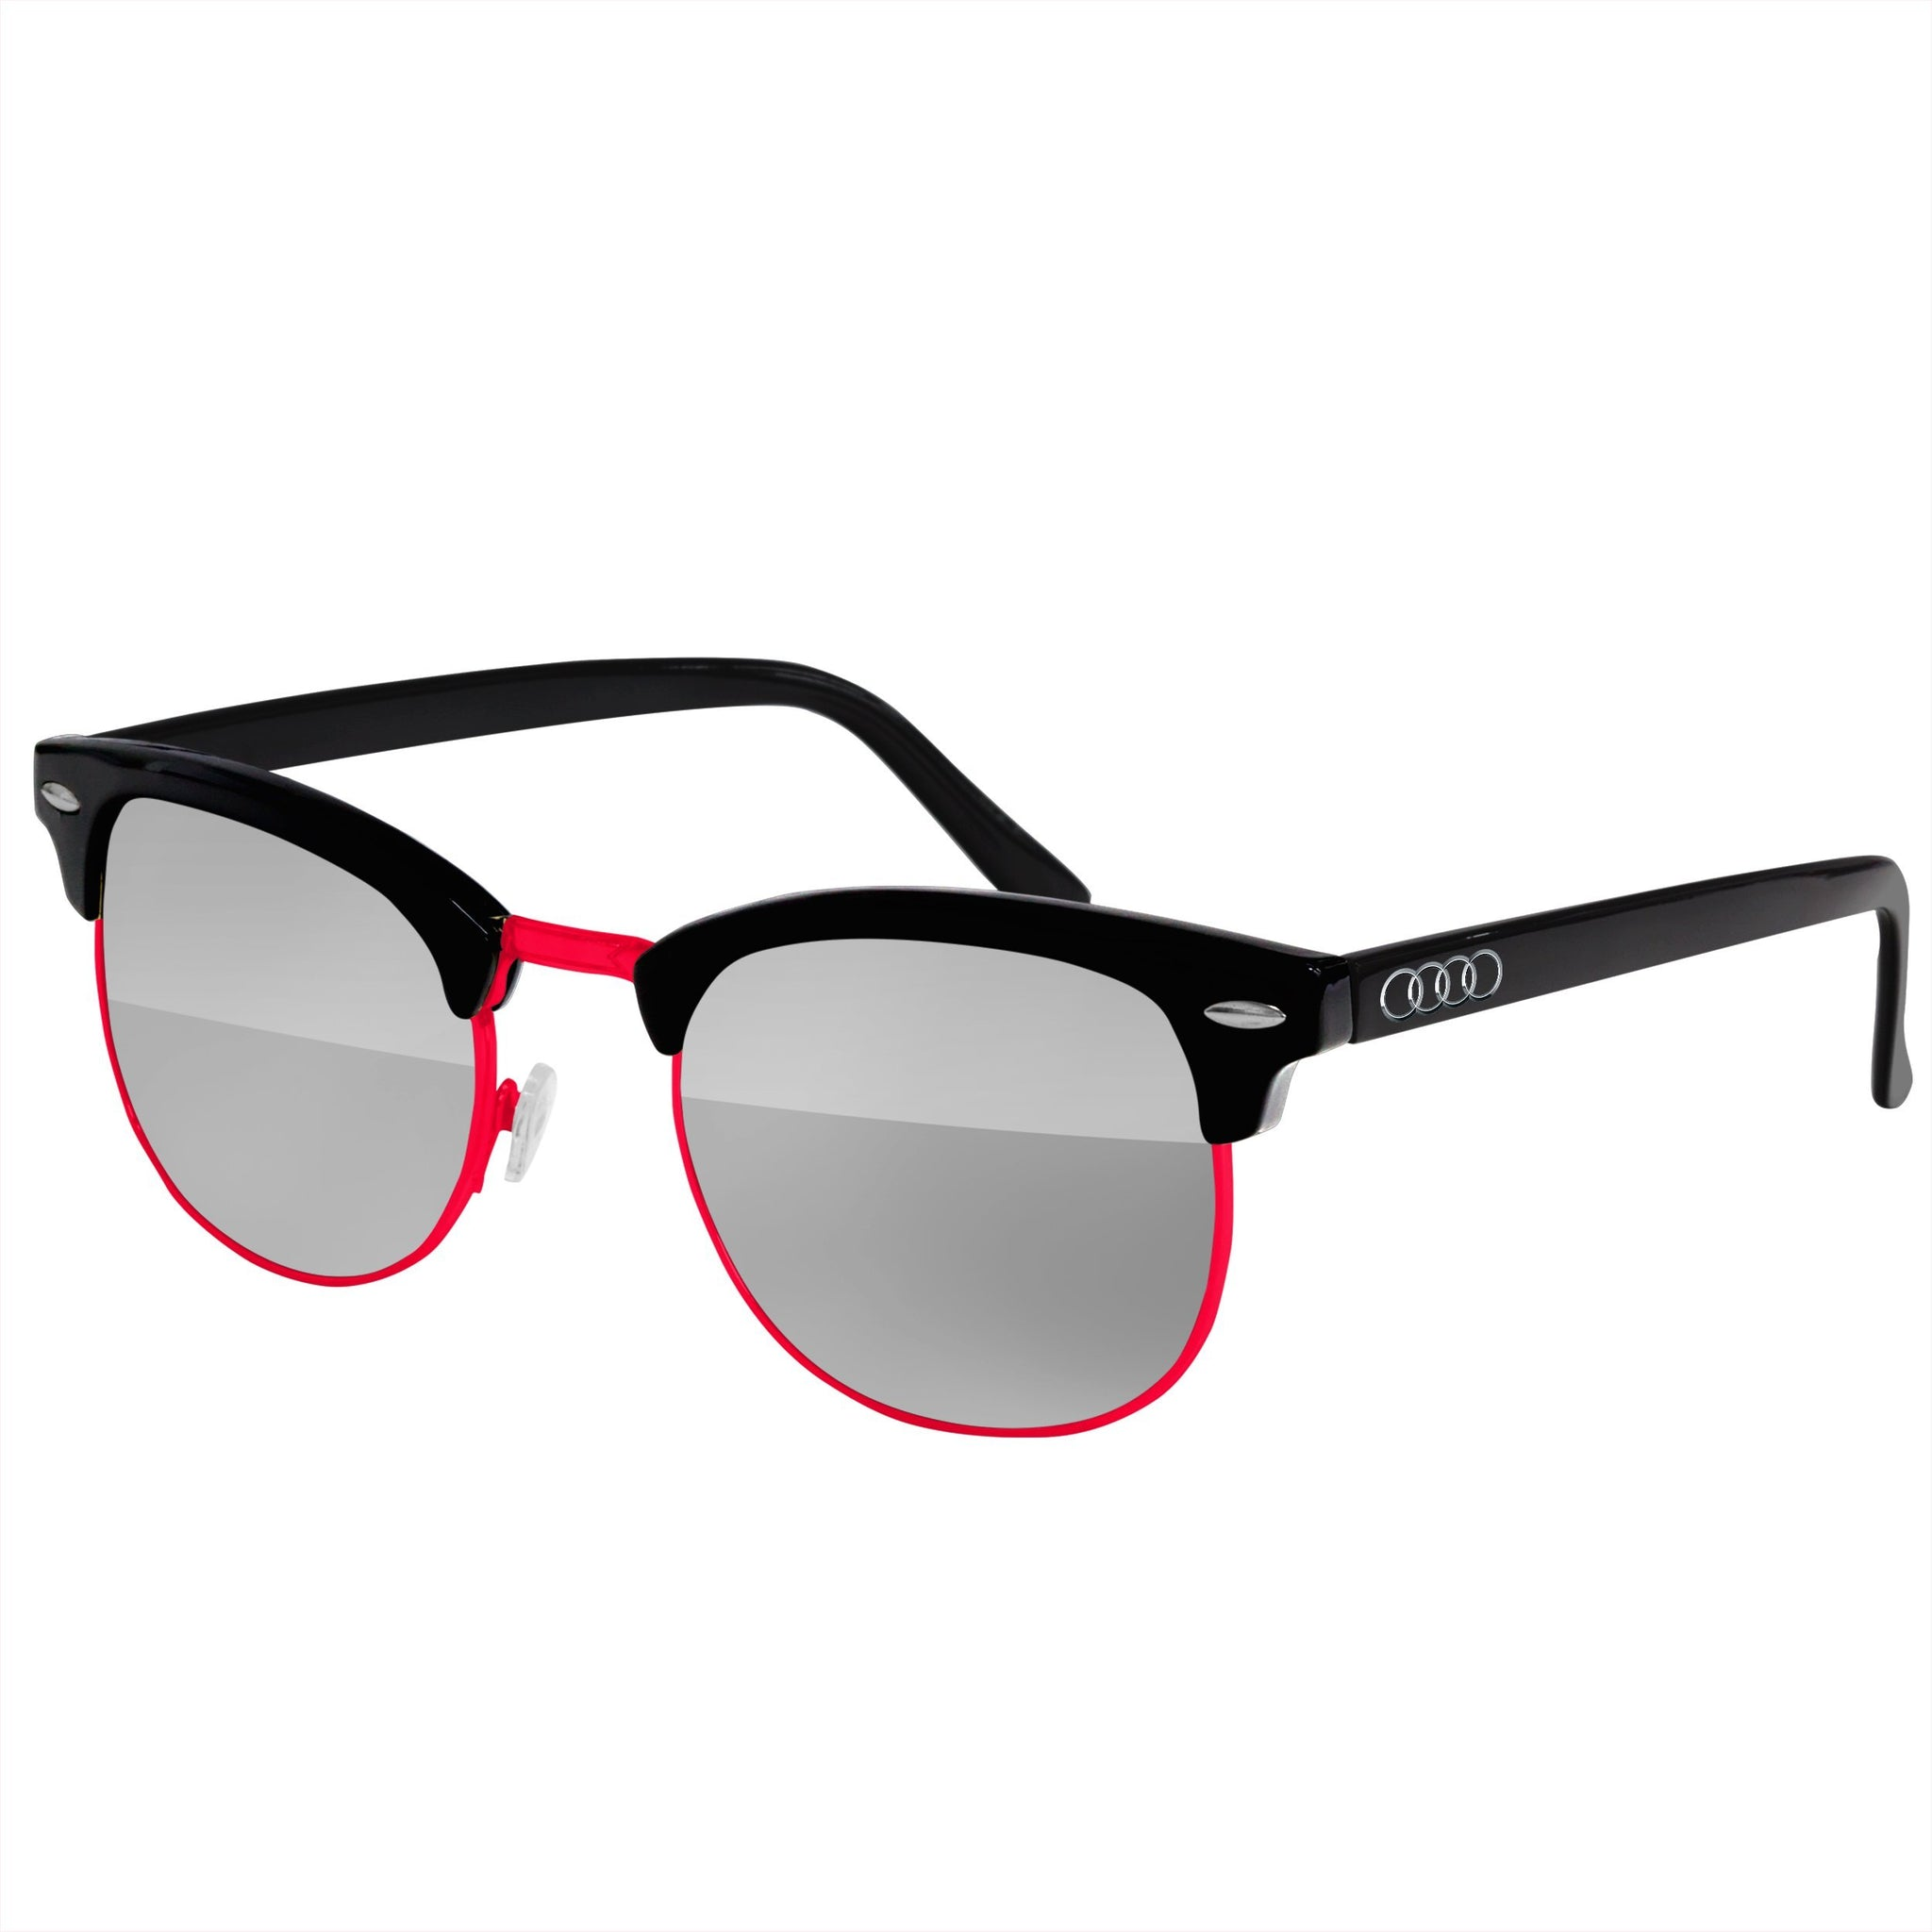 Automotive - UM020 - Metal Club Promotional Sunglasses w/ full-color temple imprint